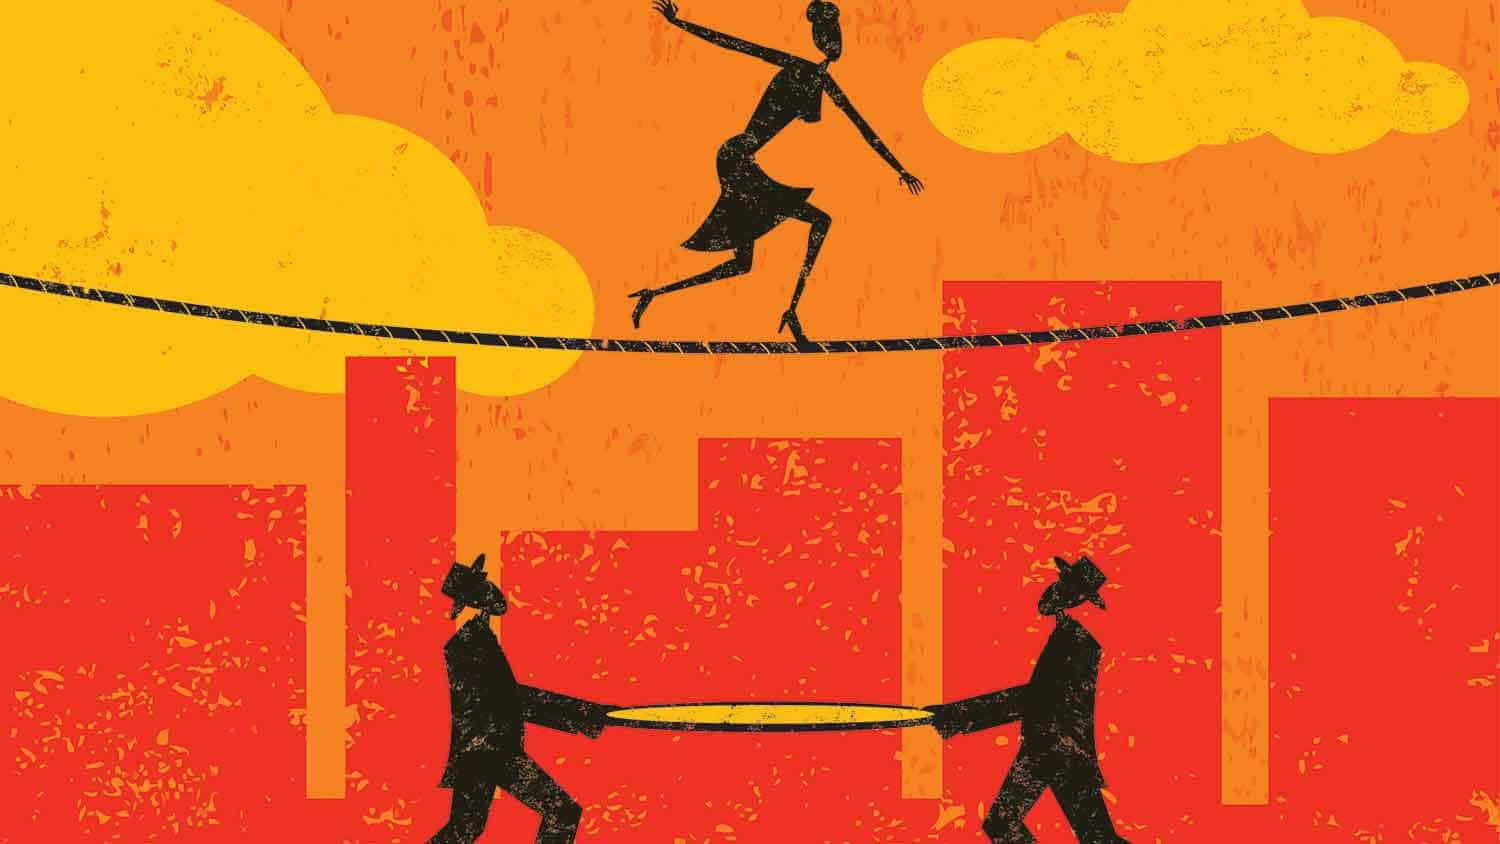 Cartoon image of a woman on a tightrope and two men underneath ready to catch her with a net